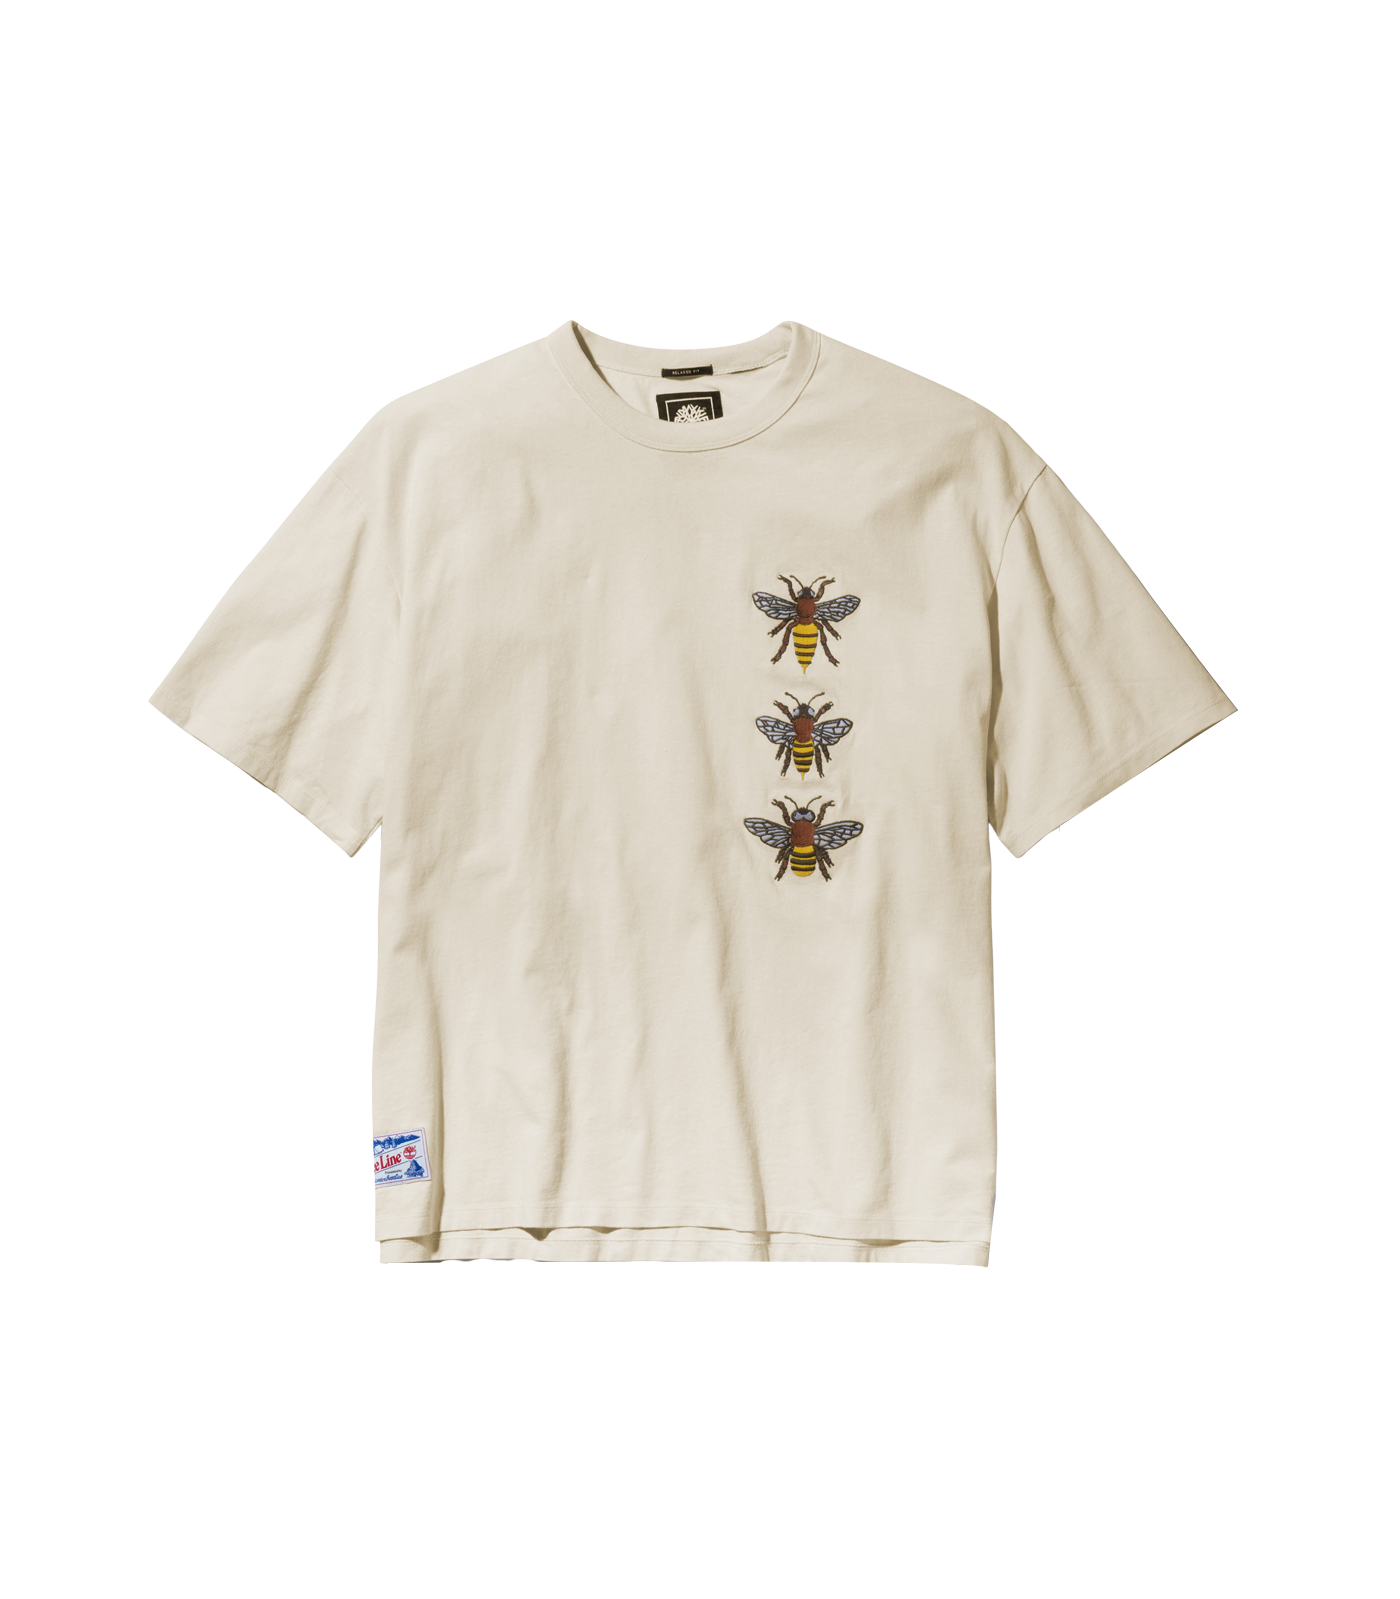 BEE LINE TIMBERLAND S/S T-SHIRT- WHITE SMOKE